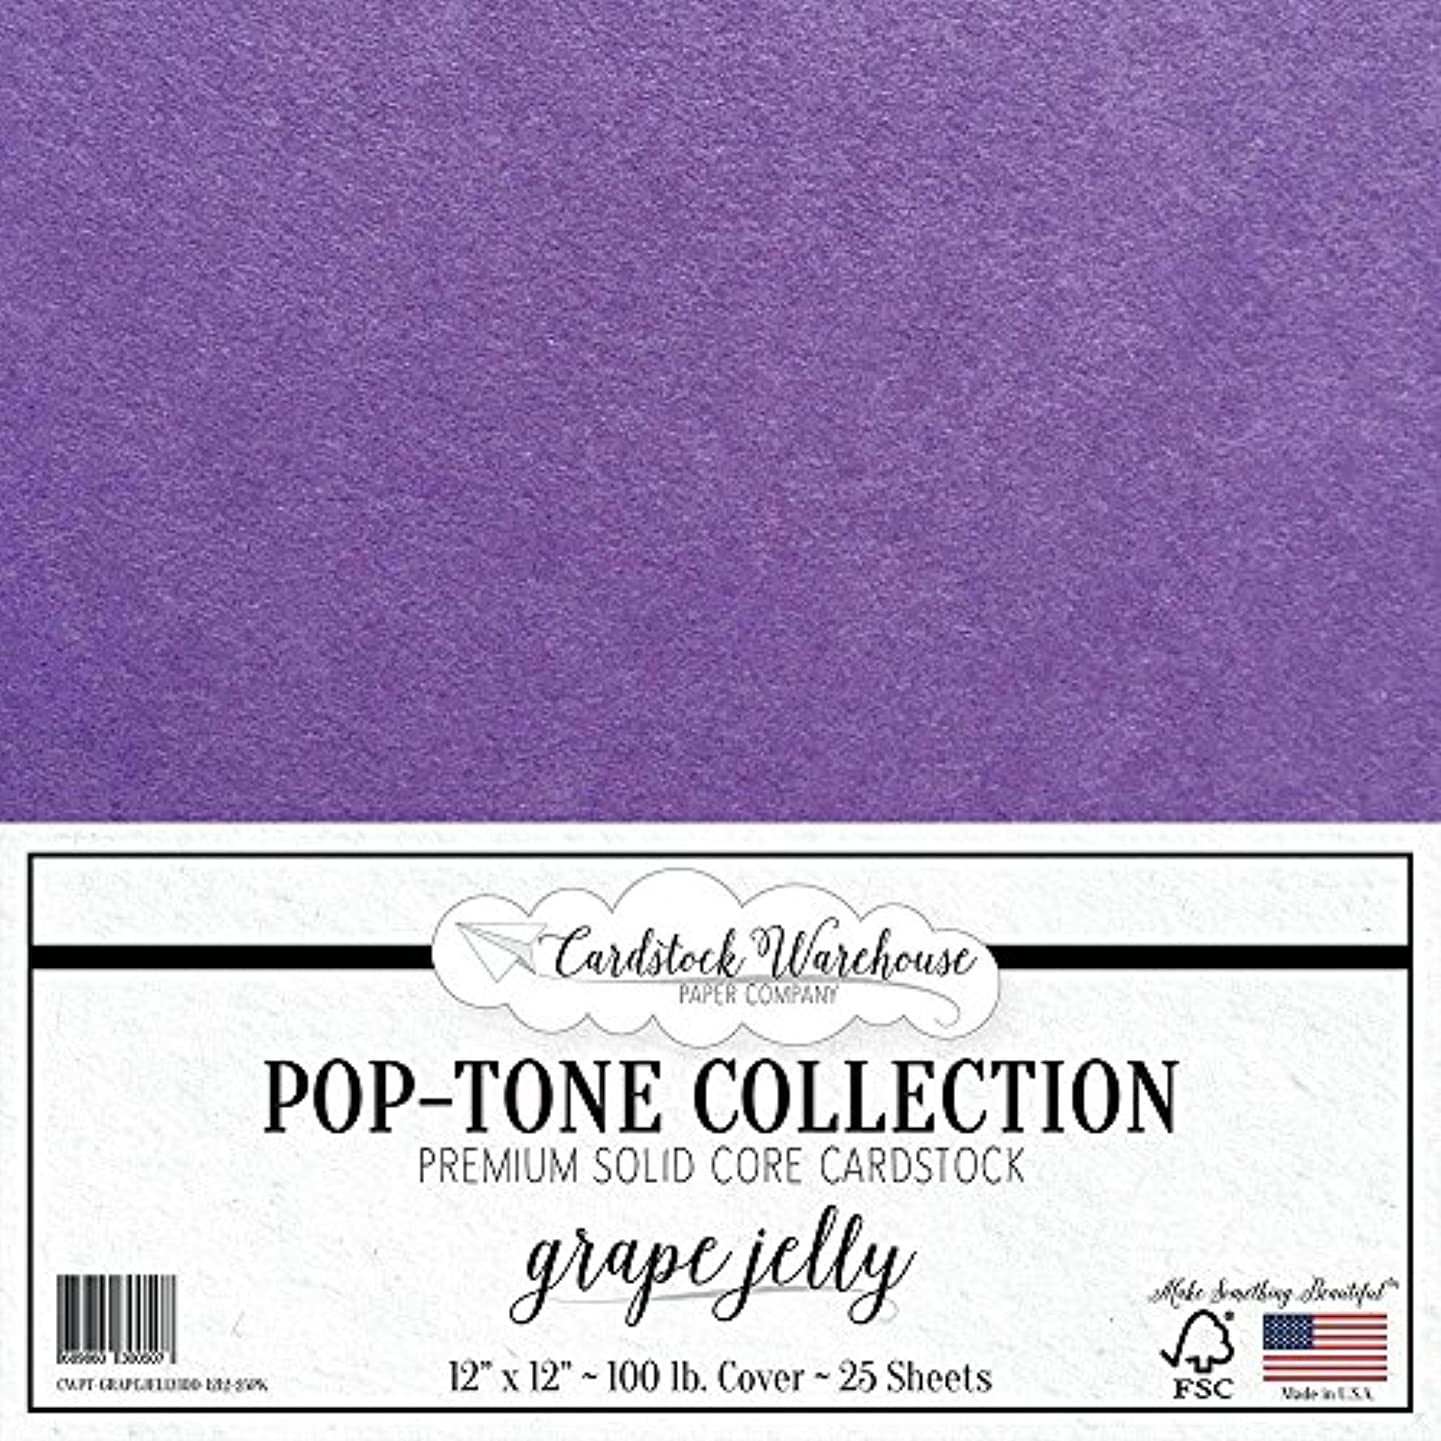 Grape Jelly Purple Cardstock Paper - 12 x 12 inch 100 lb. Heavyweight Cover - 25 Sheets from Cardstock Warehouse